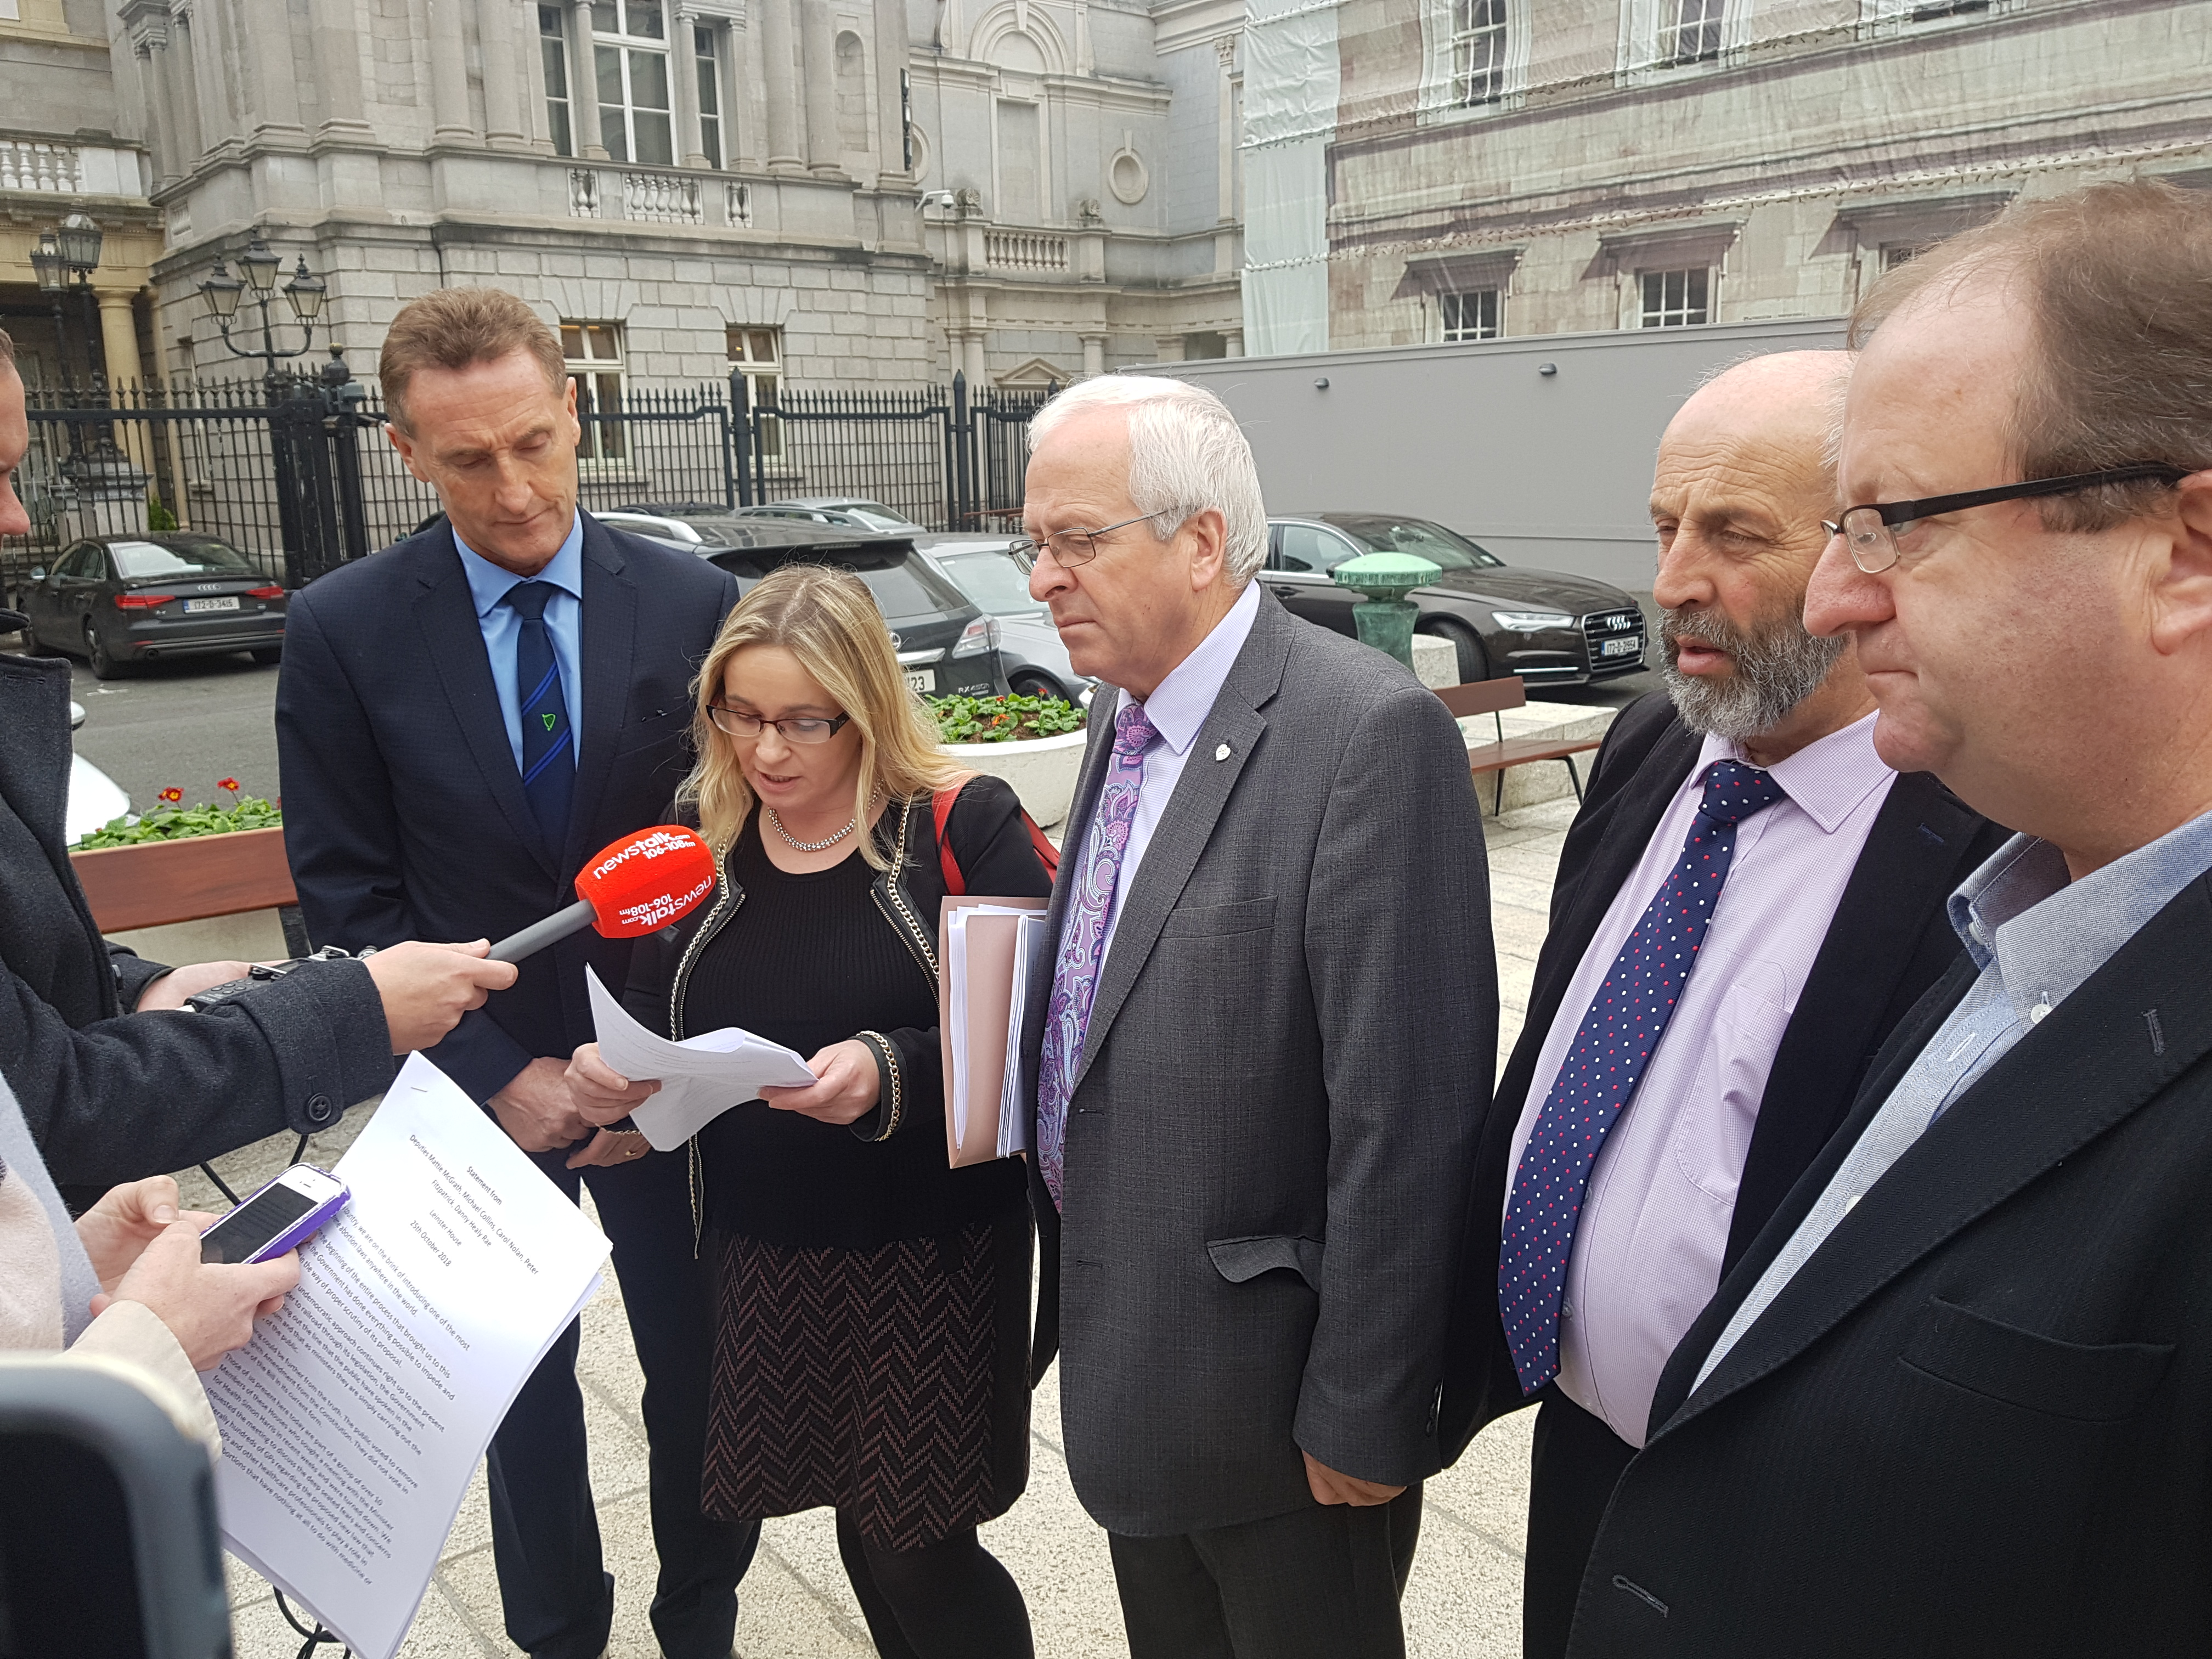 Minister Harris refuses to meet TDS who have concerns over Abortion Bill